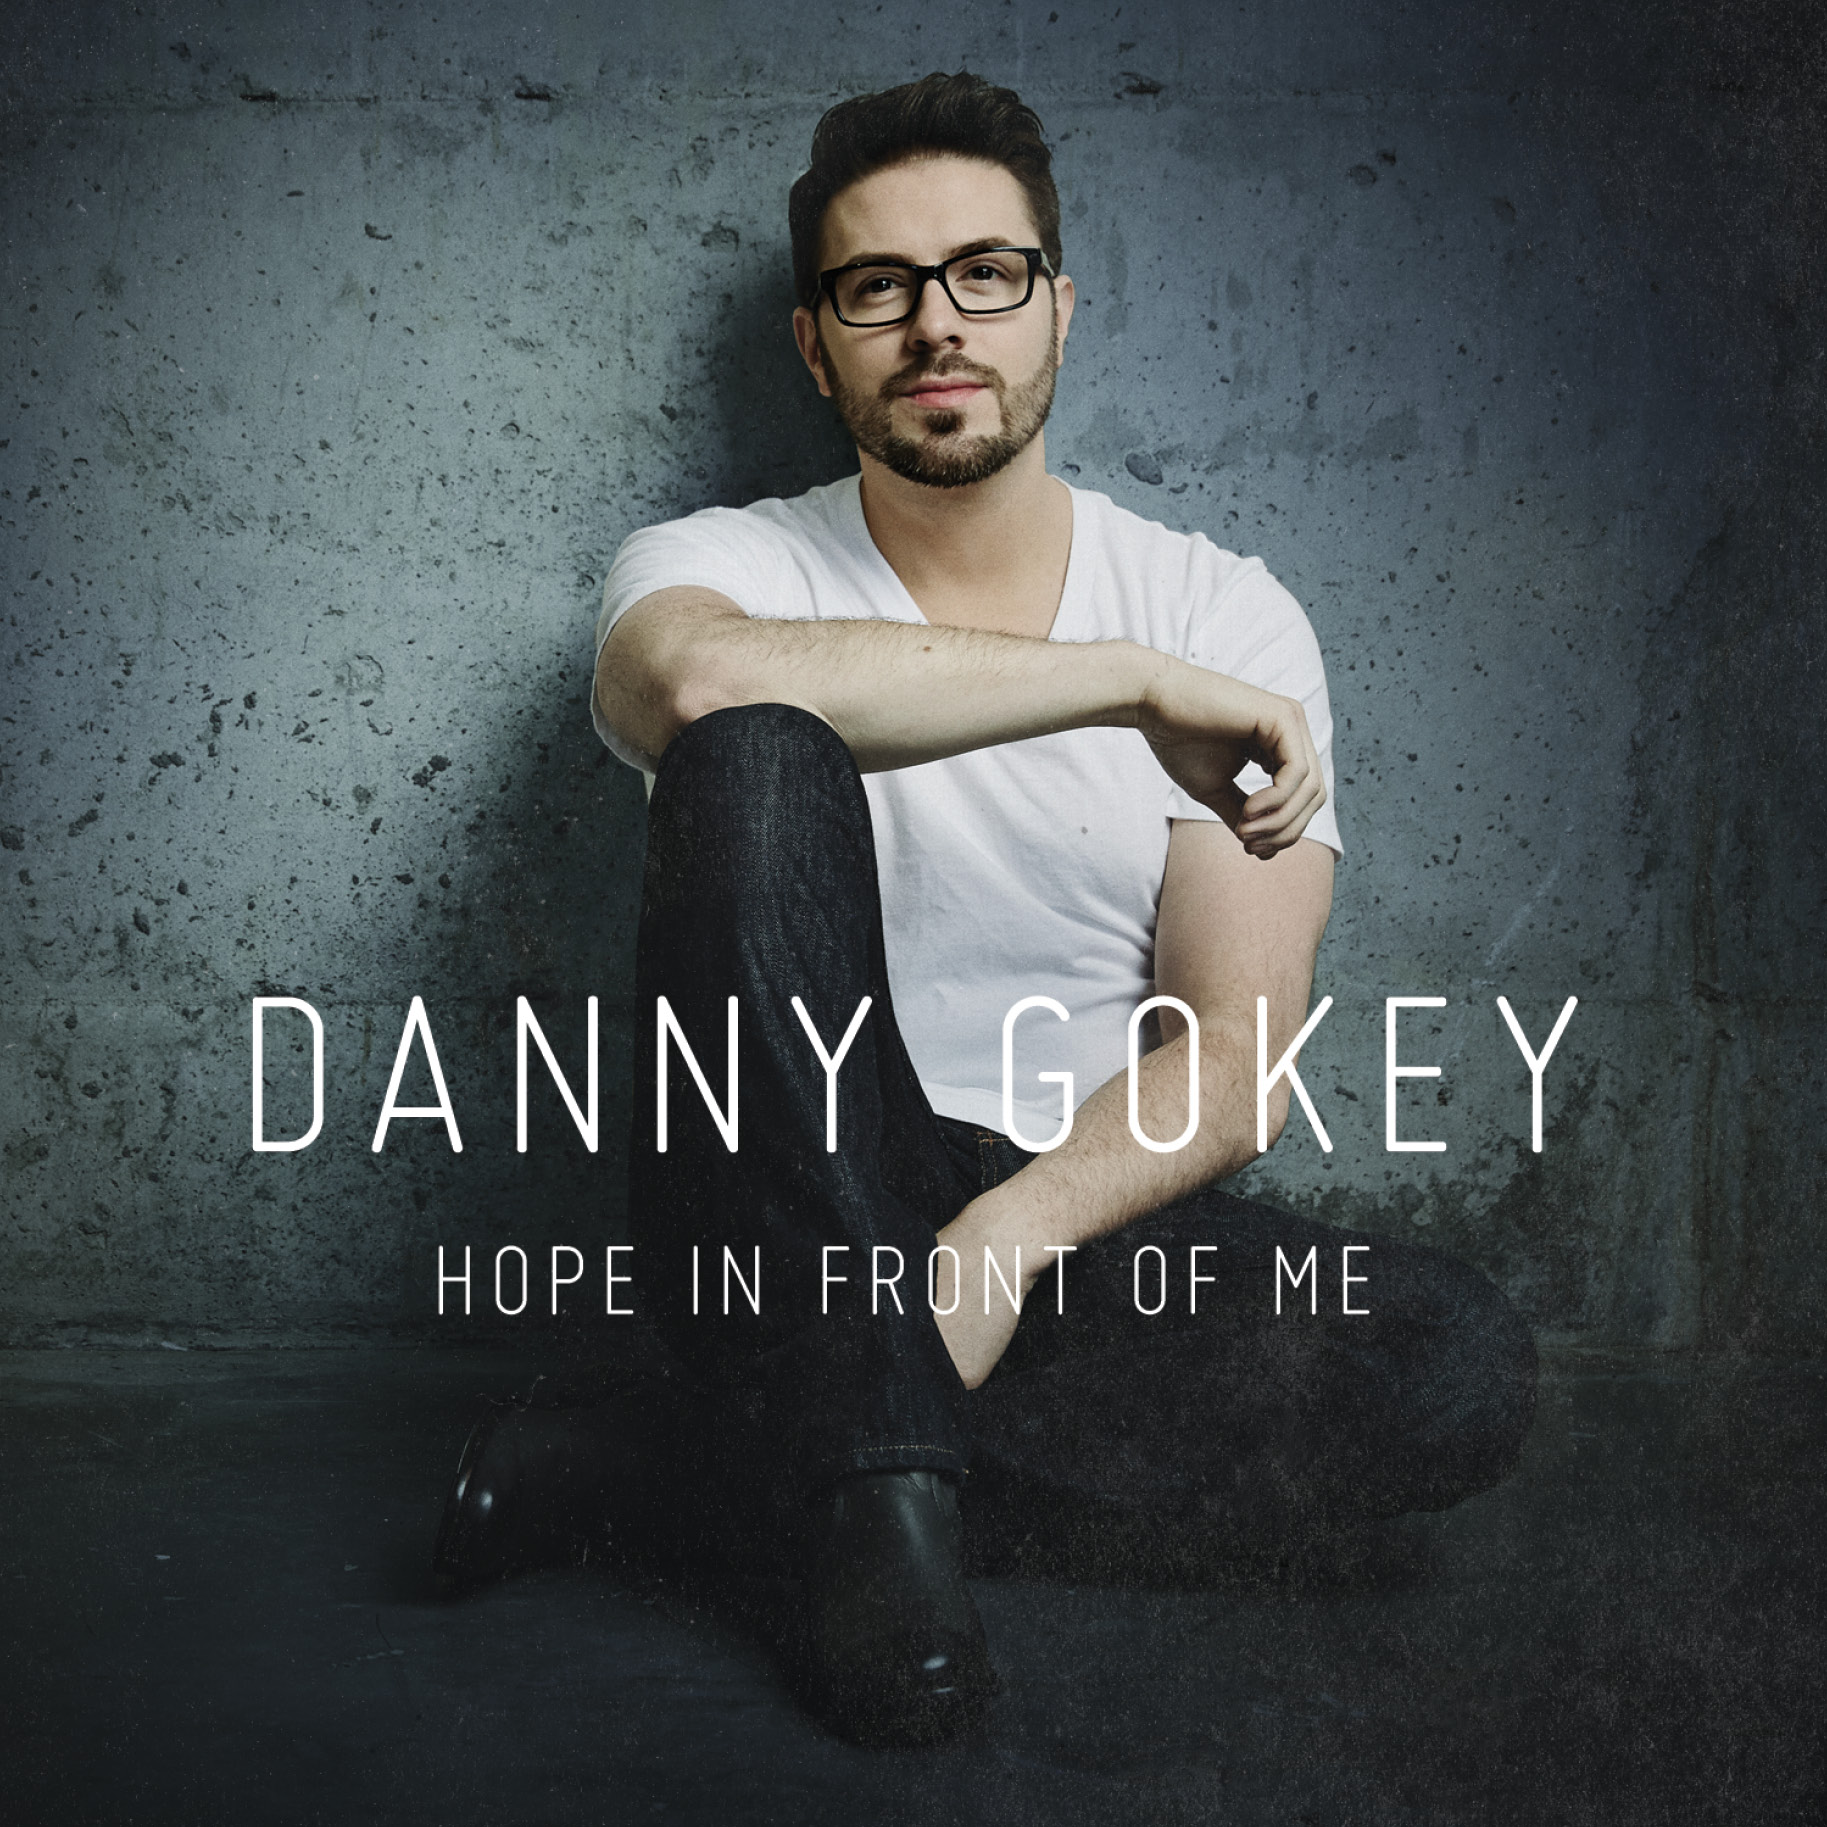 Danny Gokey - Hope In Front Of Me